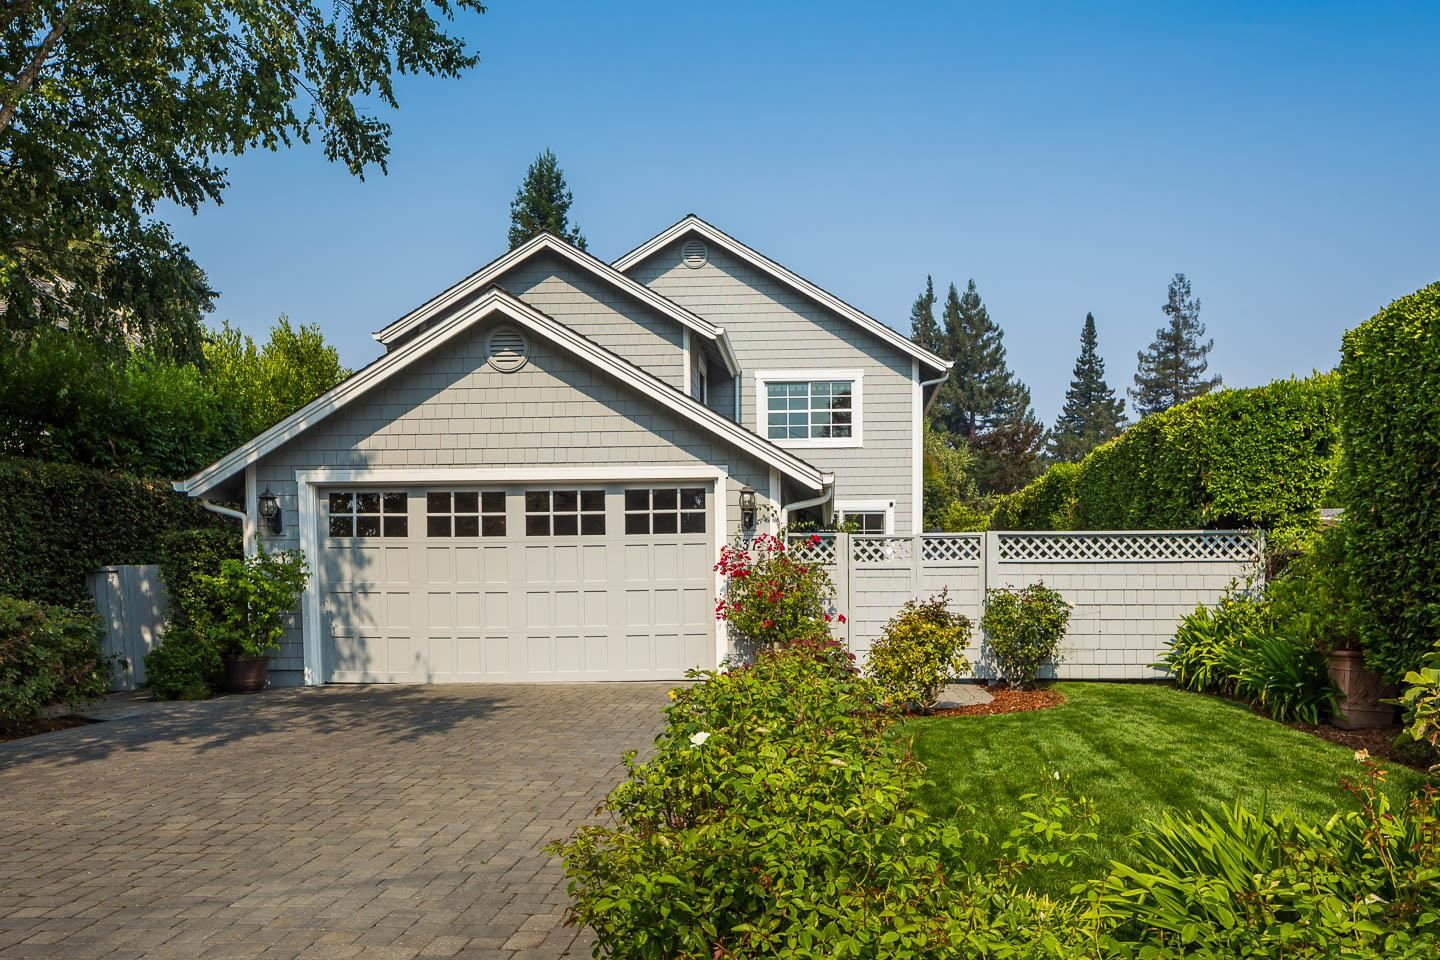 Photo for 37 Watkins AVE, ATHERTON, CA 94027 (MLS # ML81809230)